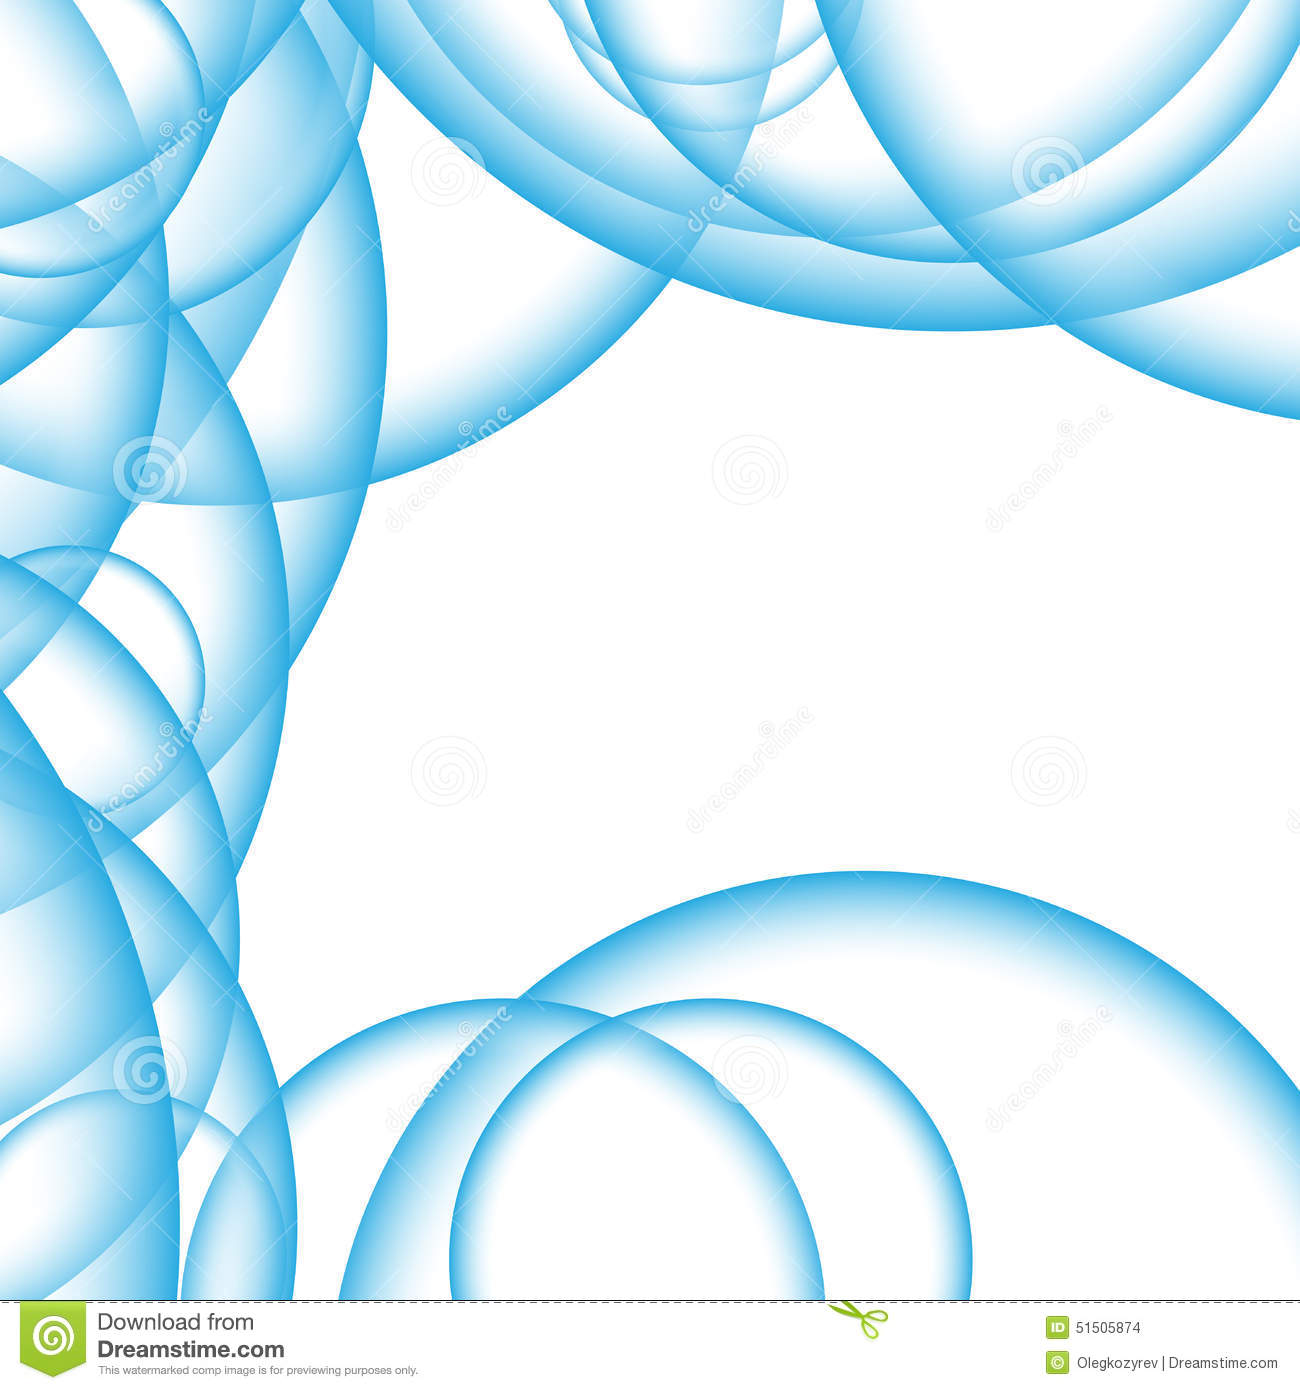 Abstract background blue air bubbles